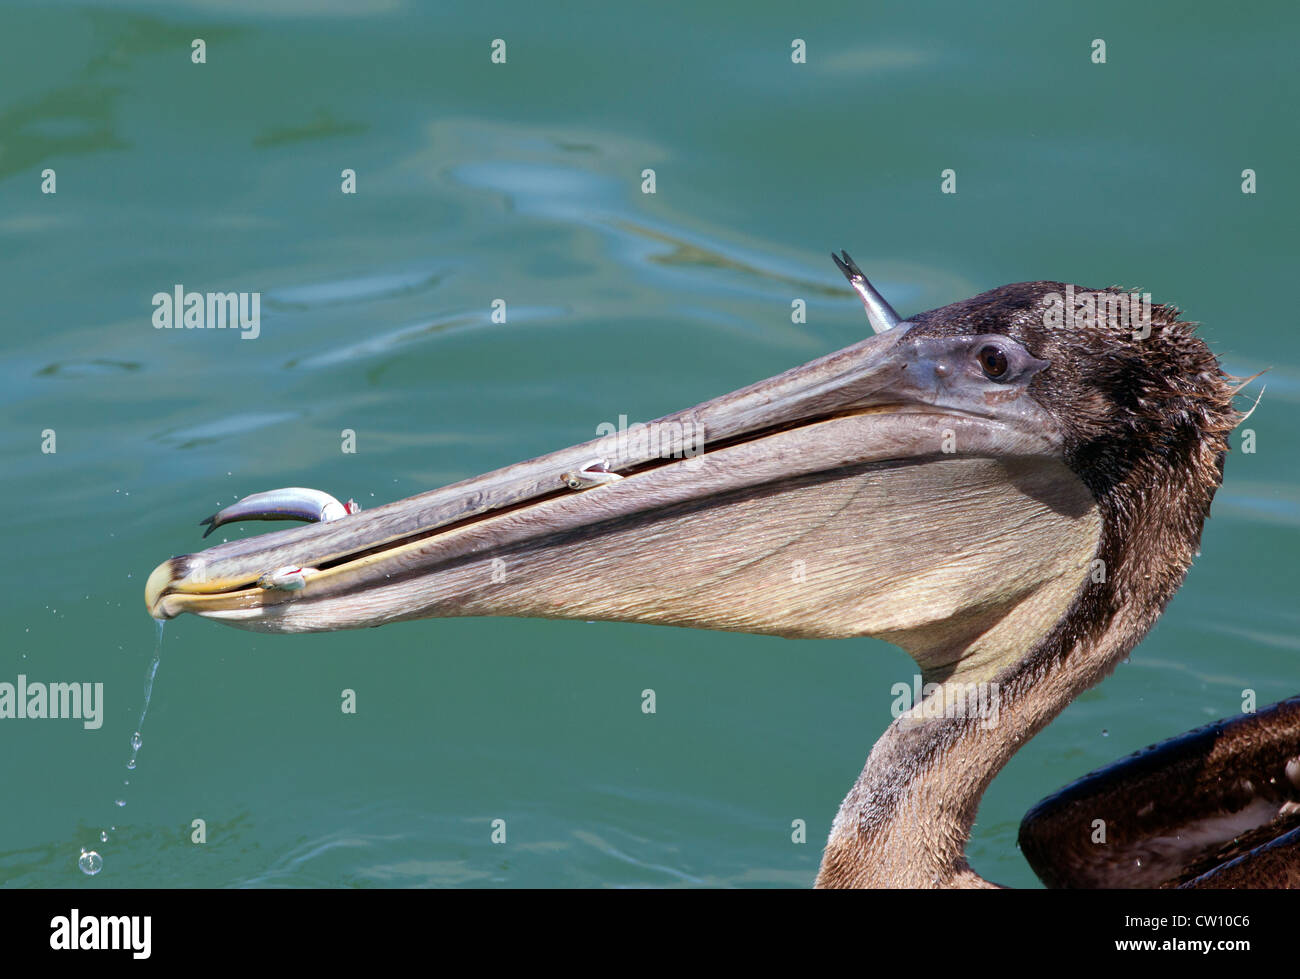 Brown Pelican with Gular Pouch full of  Fish - Stock Image